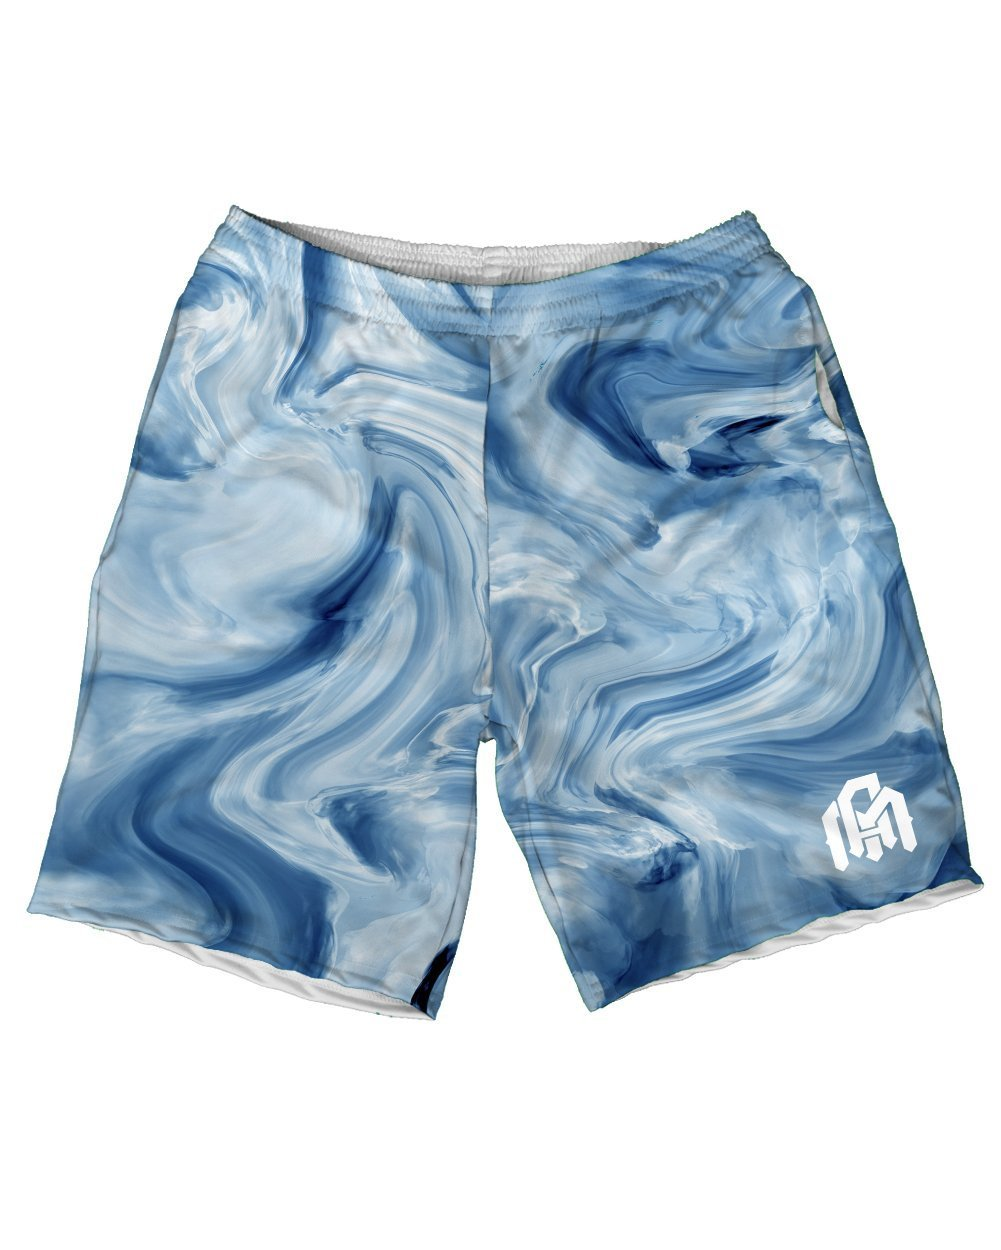 Blue Marble Men's Athletic Shorts-Front